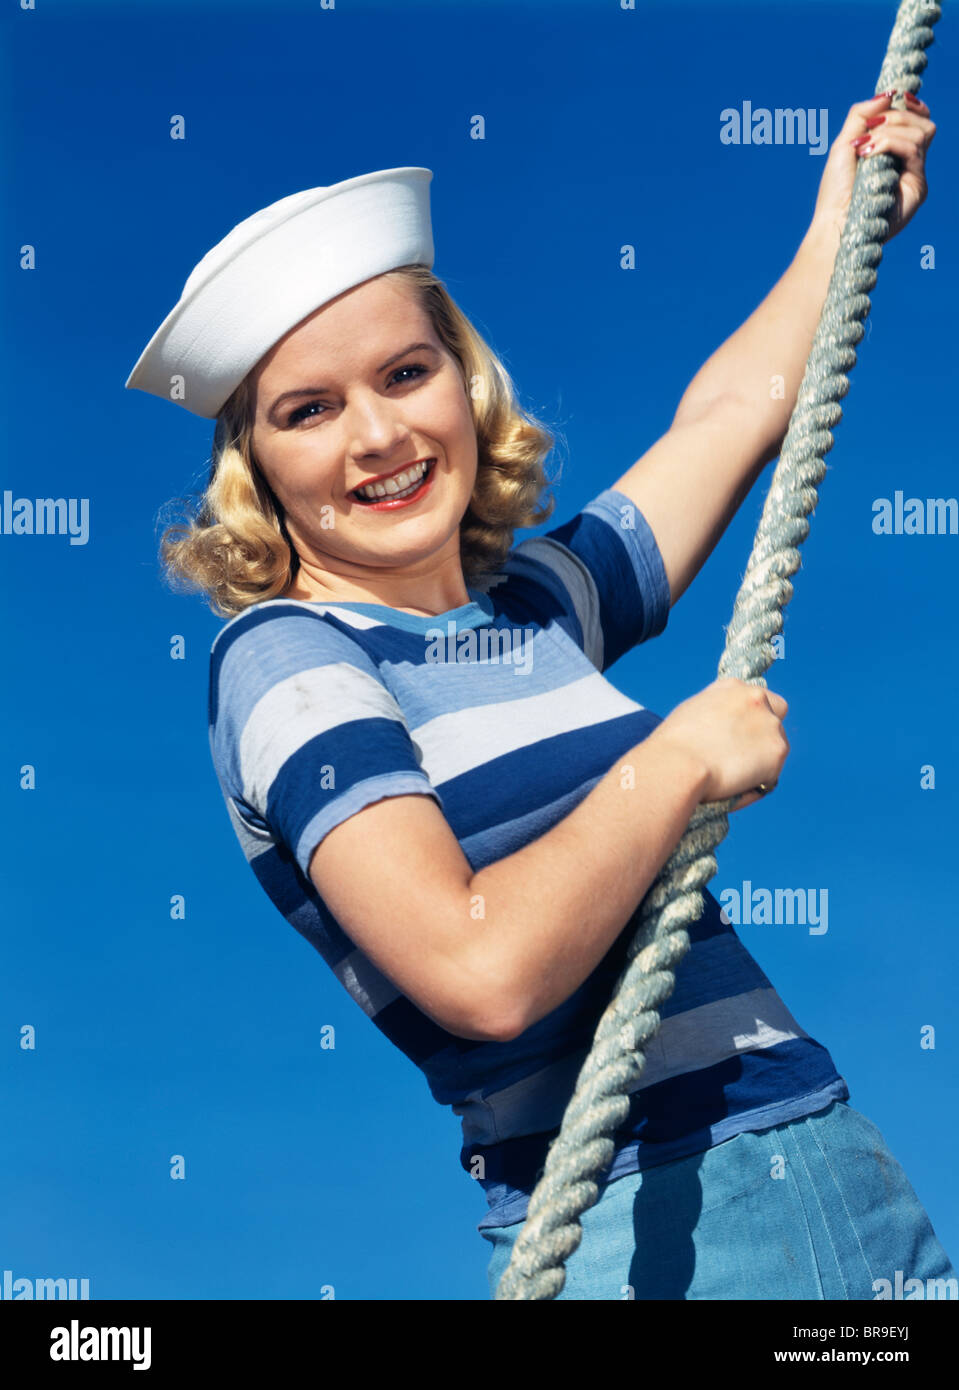 e6fba8115 1940s SMILING BLOND GIRL WEARING NAVY SAILOR HAT BLUE STRIPED SHIRT ...